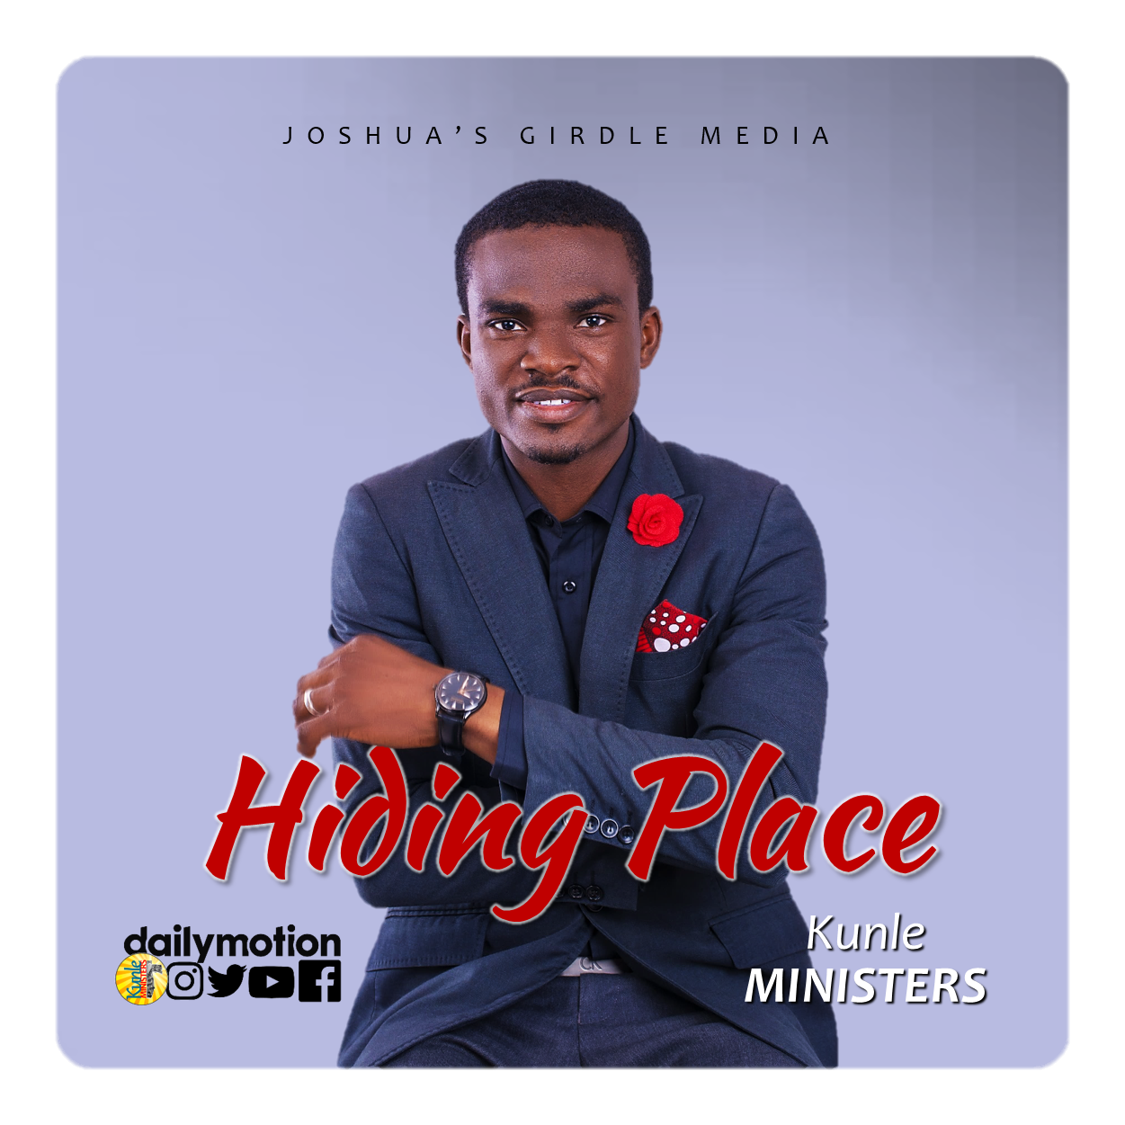 HIDING PLACE - Kunle Ministers  [@kunle_ministers]